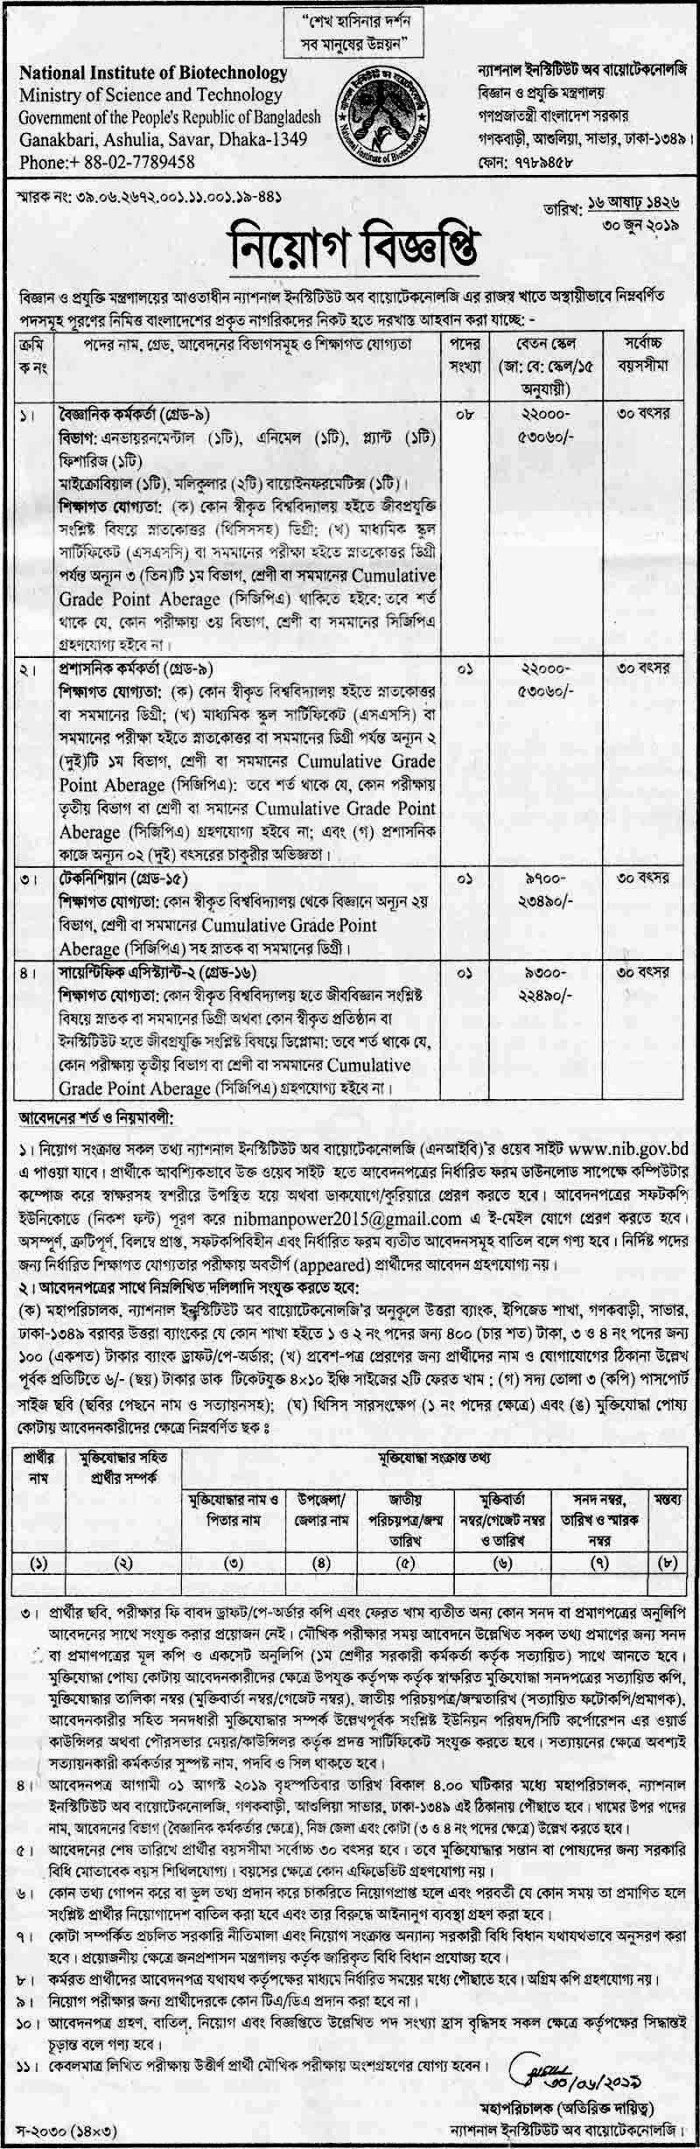 Science and Technology Ministry Job 2019